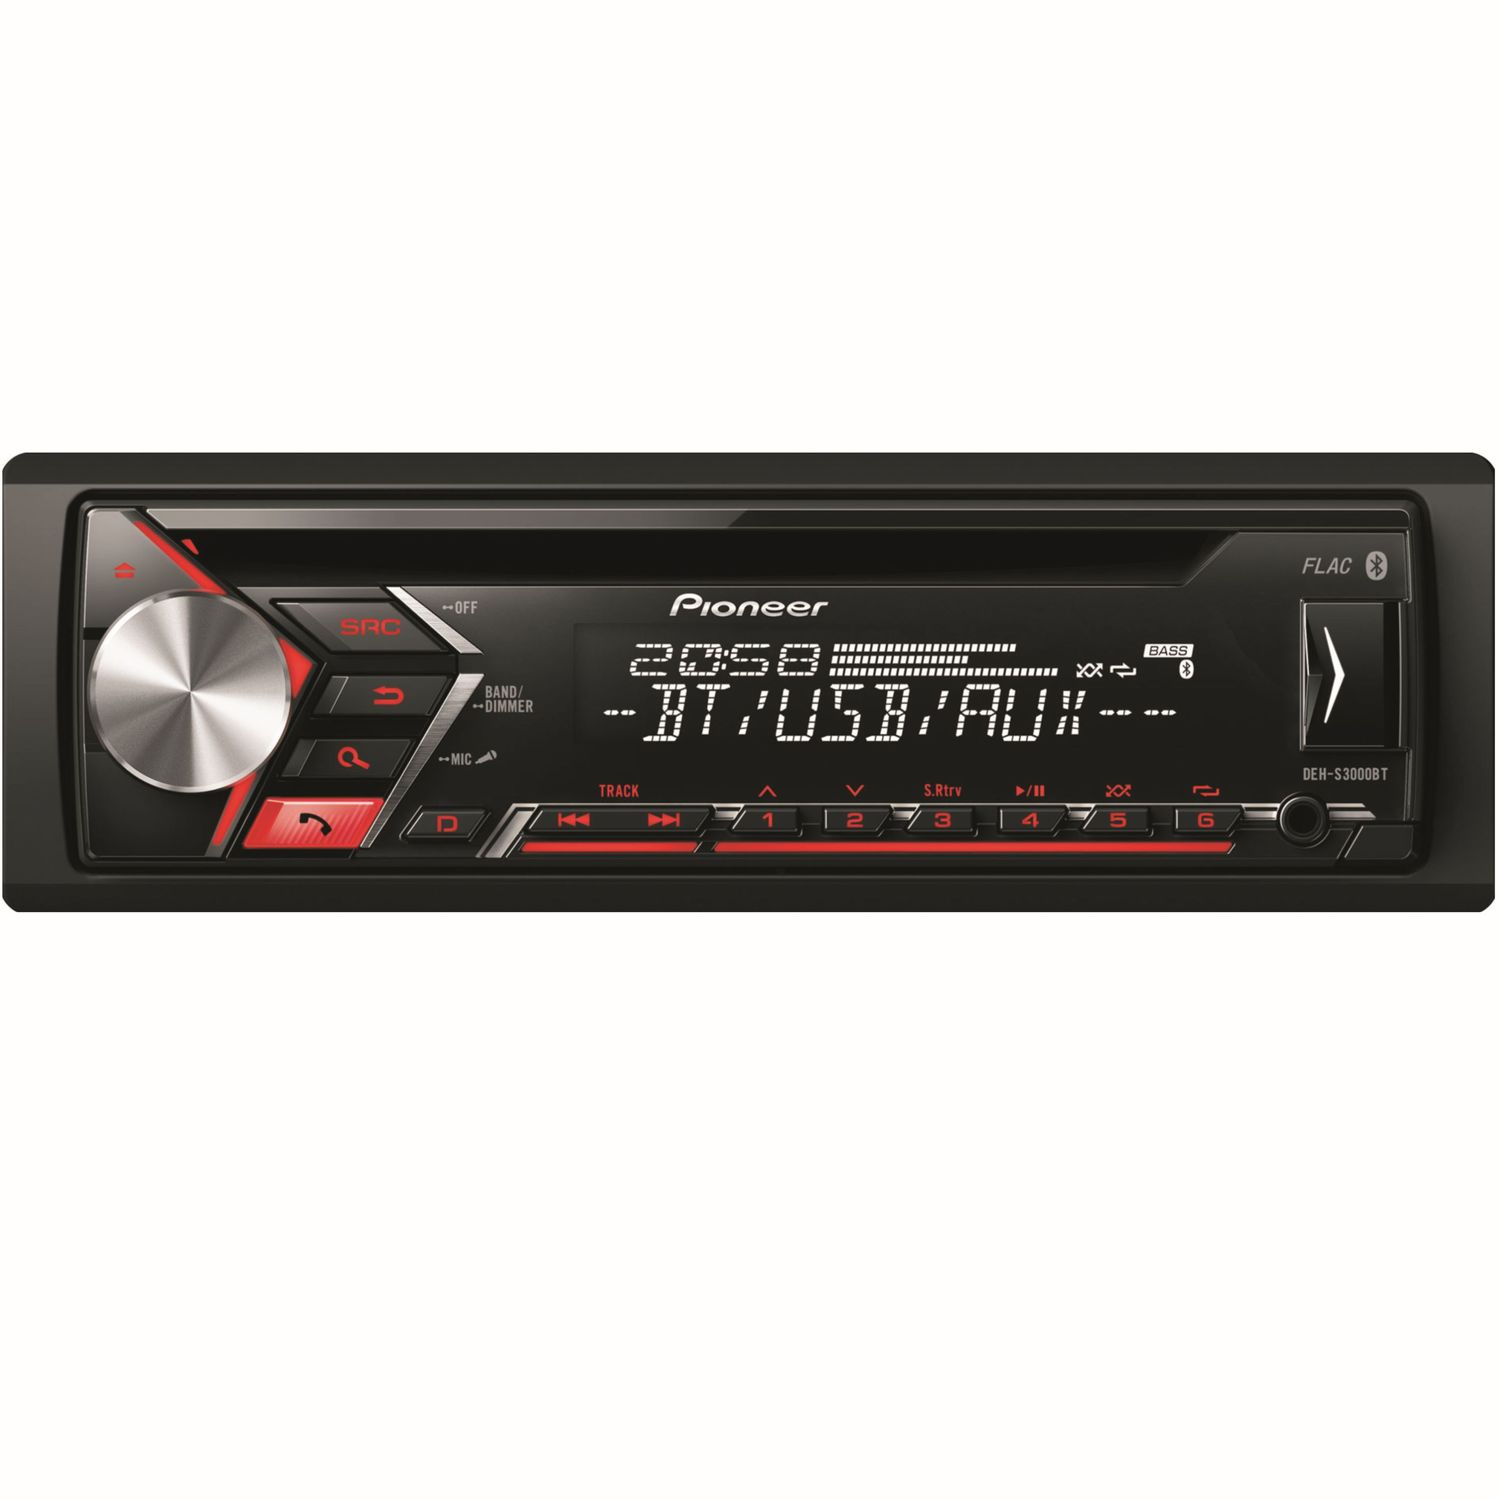 pioneer deh s3000bt cd mp3 usb autoradio mit bluetooth. Black Bedroom Furniture Sets. Home Design Ideas